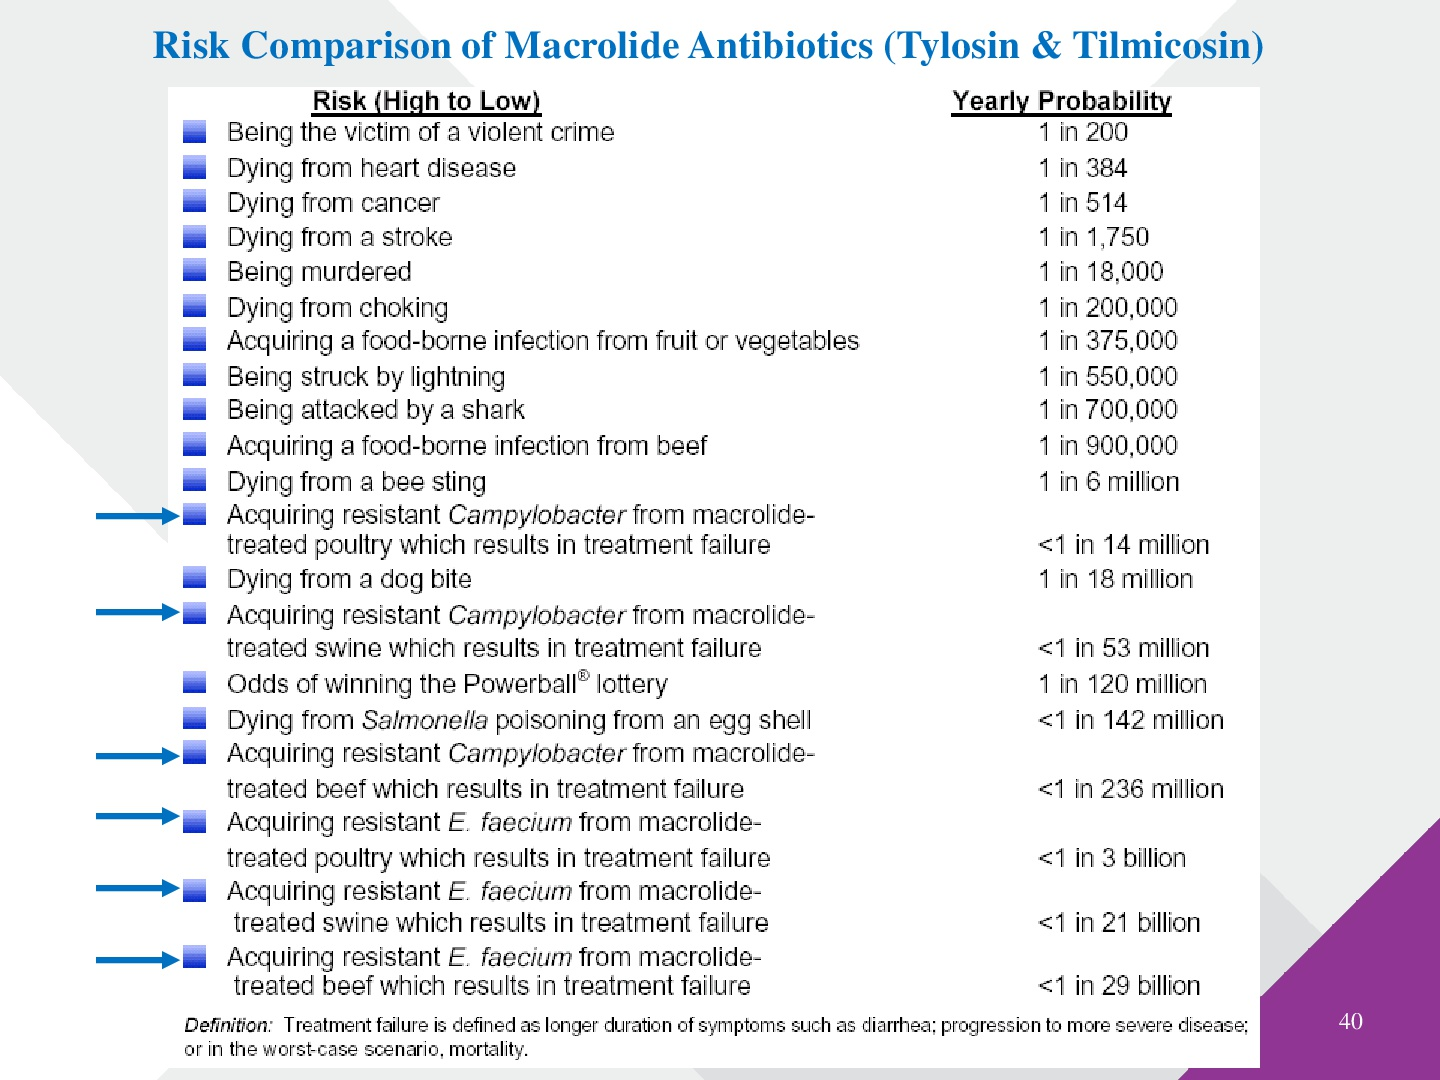 Global-overview-on-antibiotic-use-policy-in-veterinary-medicine-040_1512553308.jpg